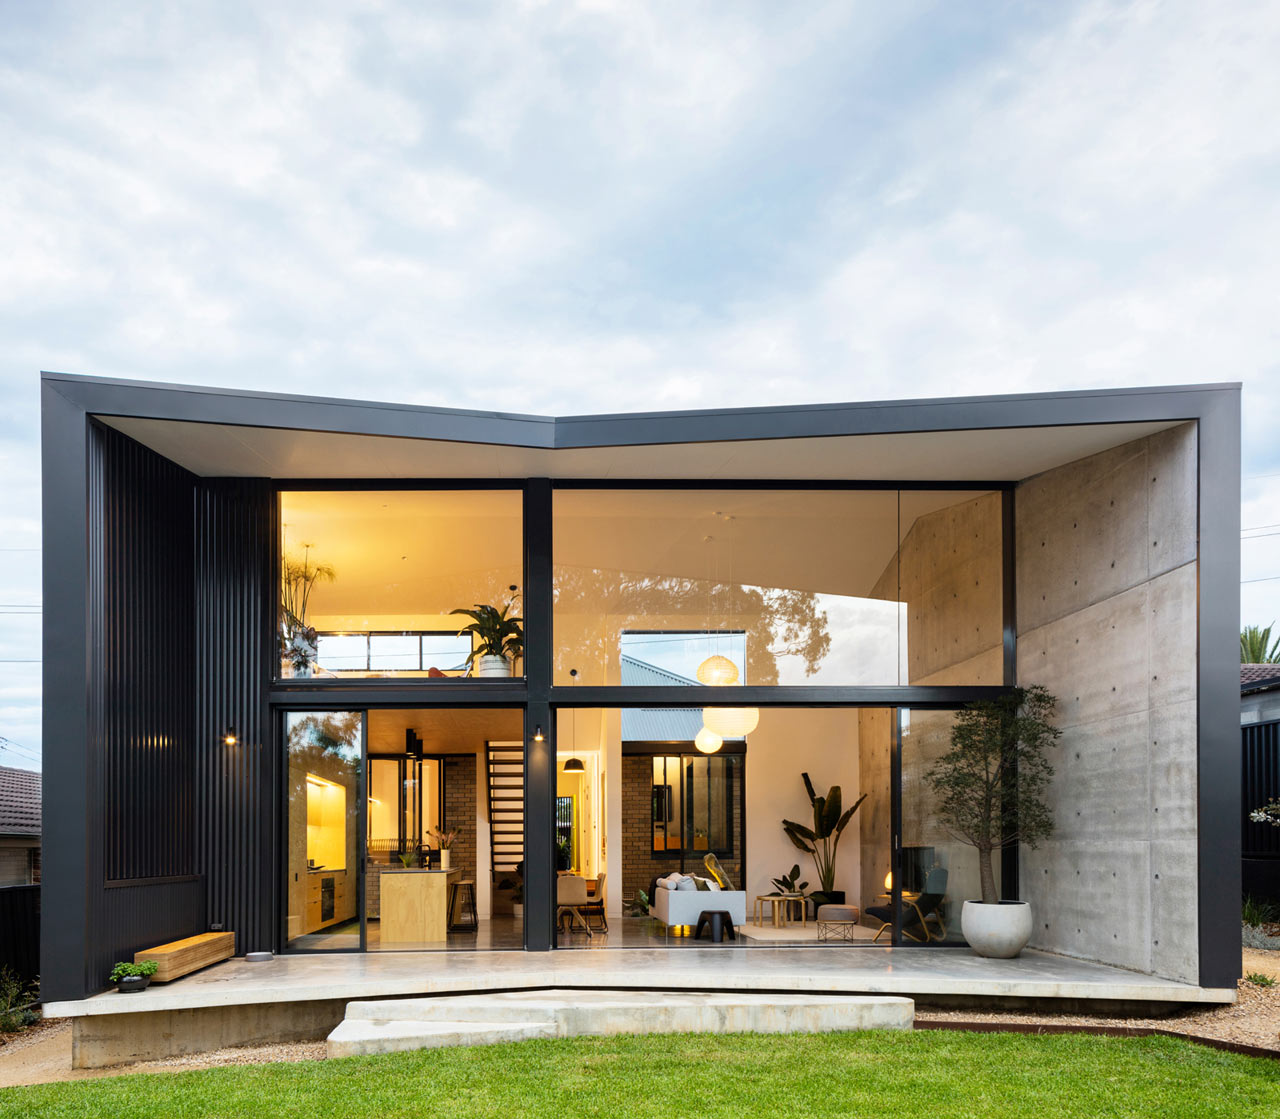 A Bungalow in Sydney Gets a Dramatic, Pavilion-Like Addition